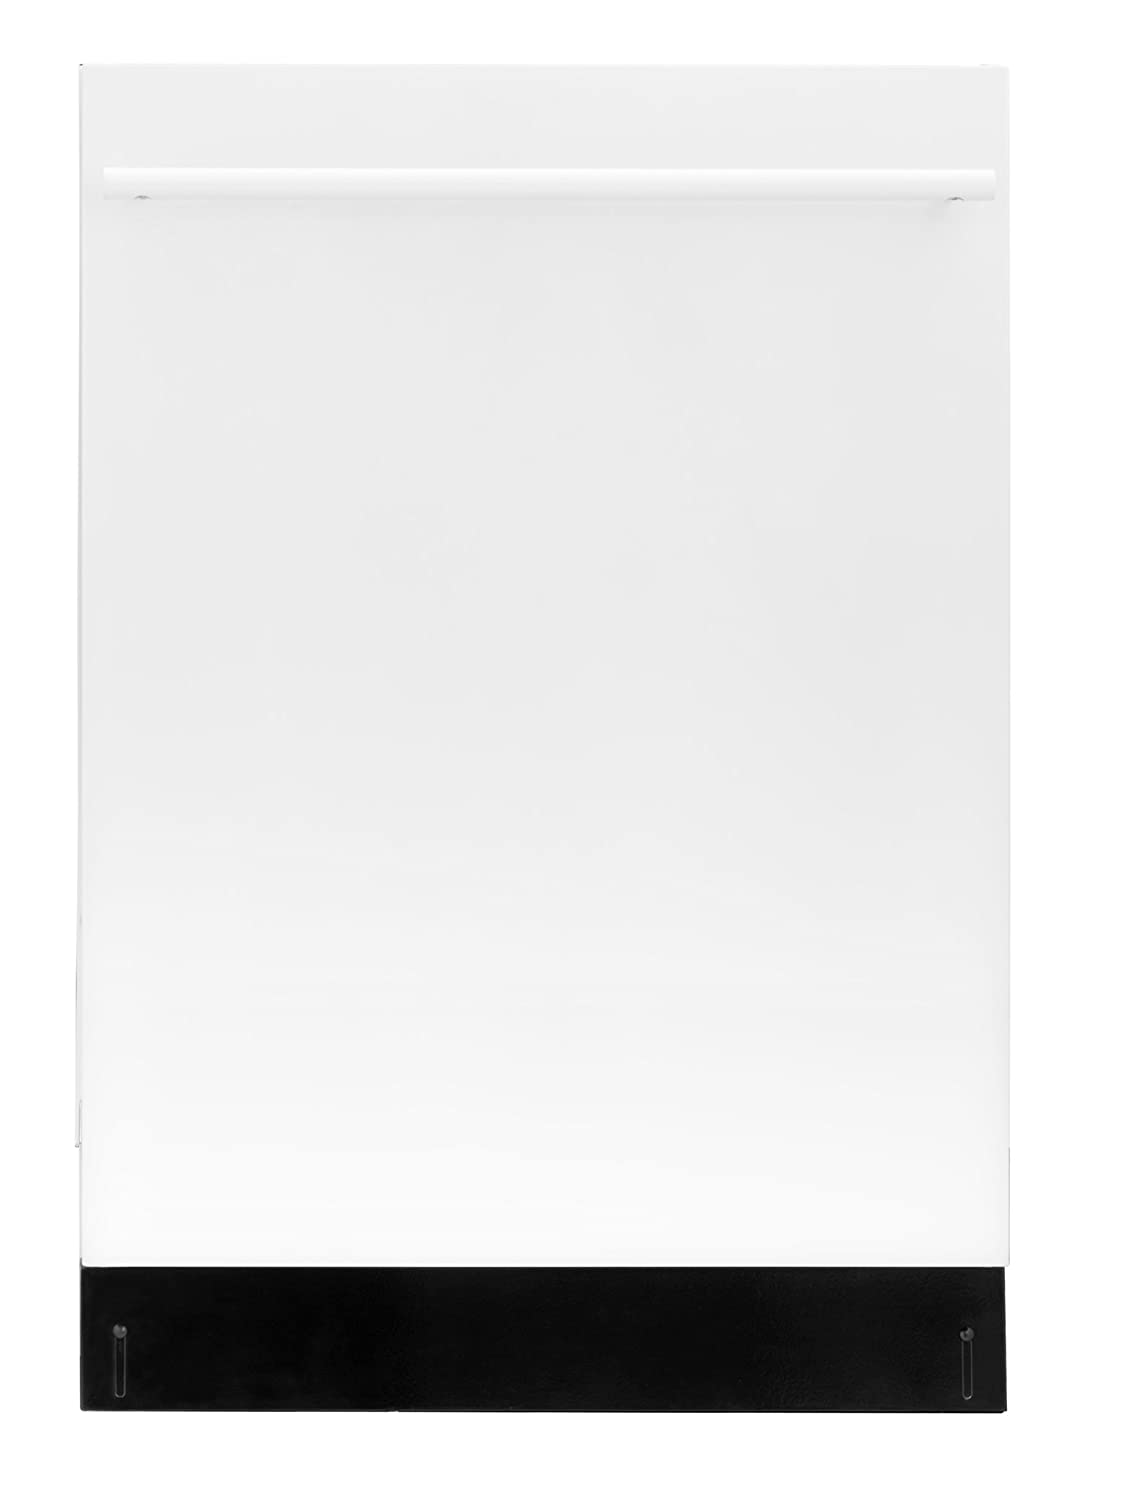 Blomberg DWT54100W Dishwasher with Tall Tub Top Controls, 4 Programs and 14 Place Settings, White